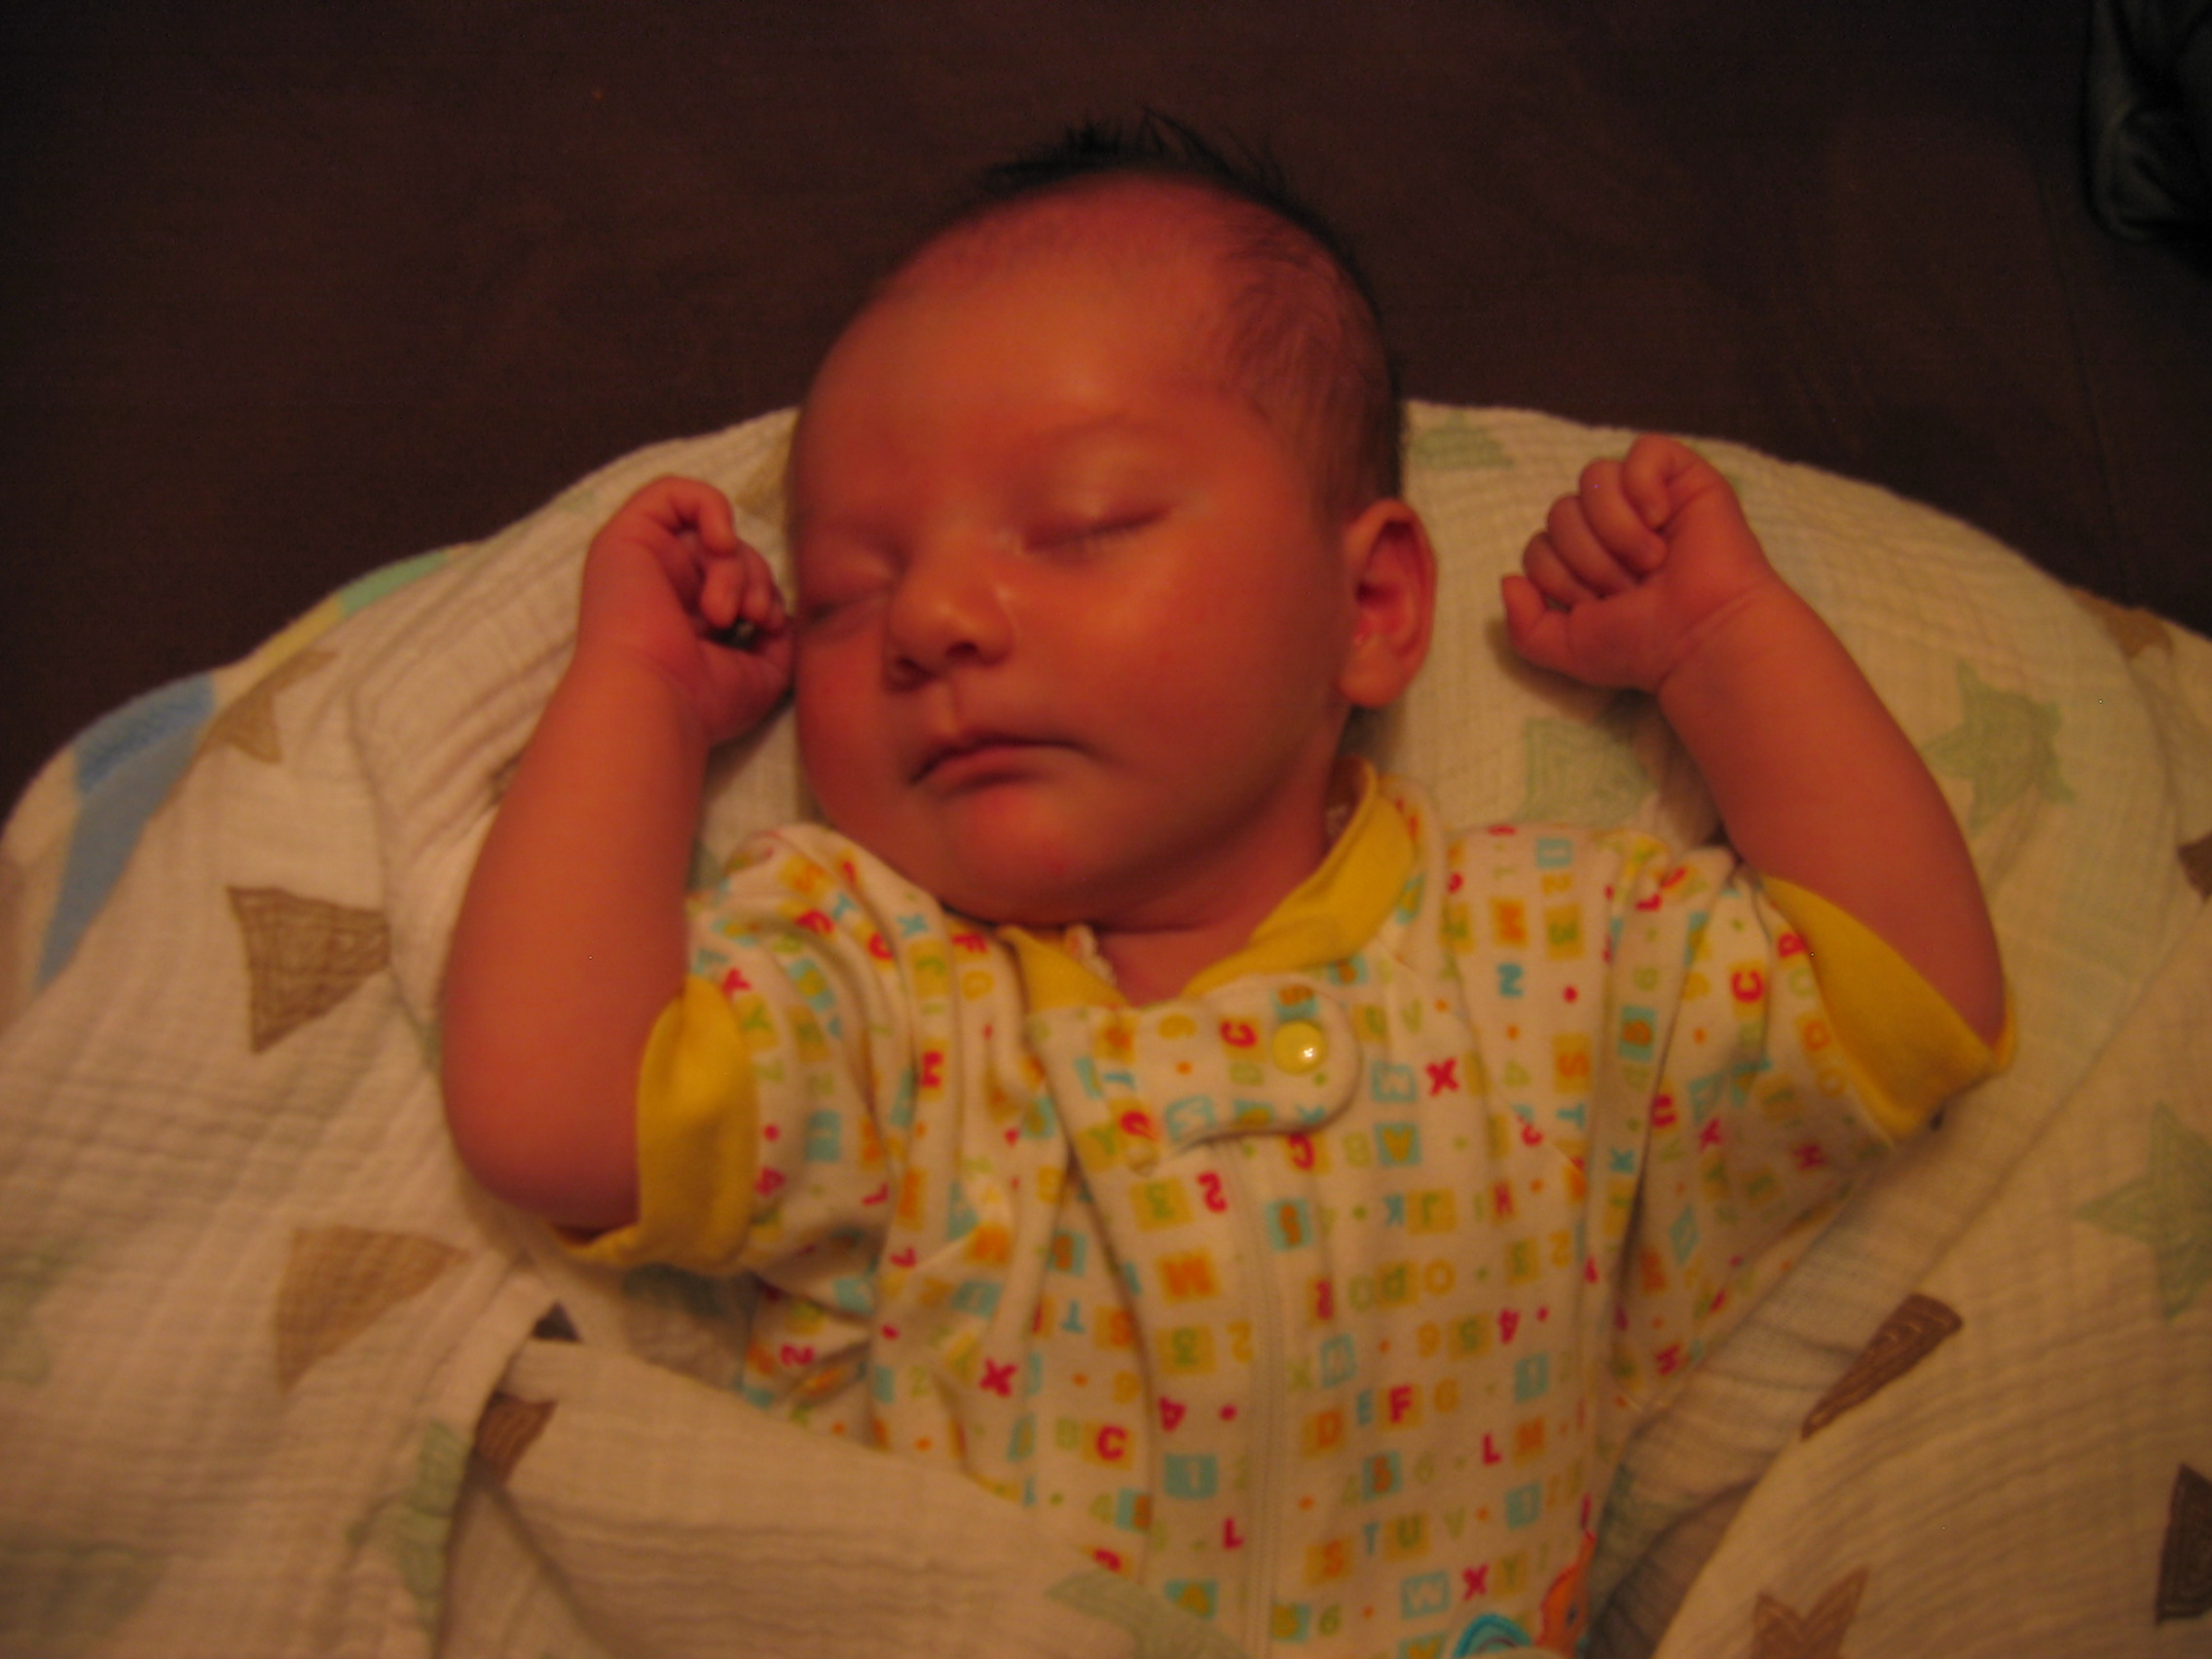 Infant Sleep Research: Bedsharing, Self-Soothing, and Sleep Training ...